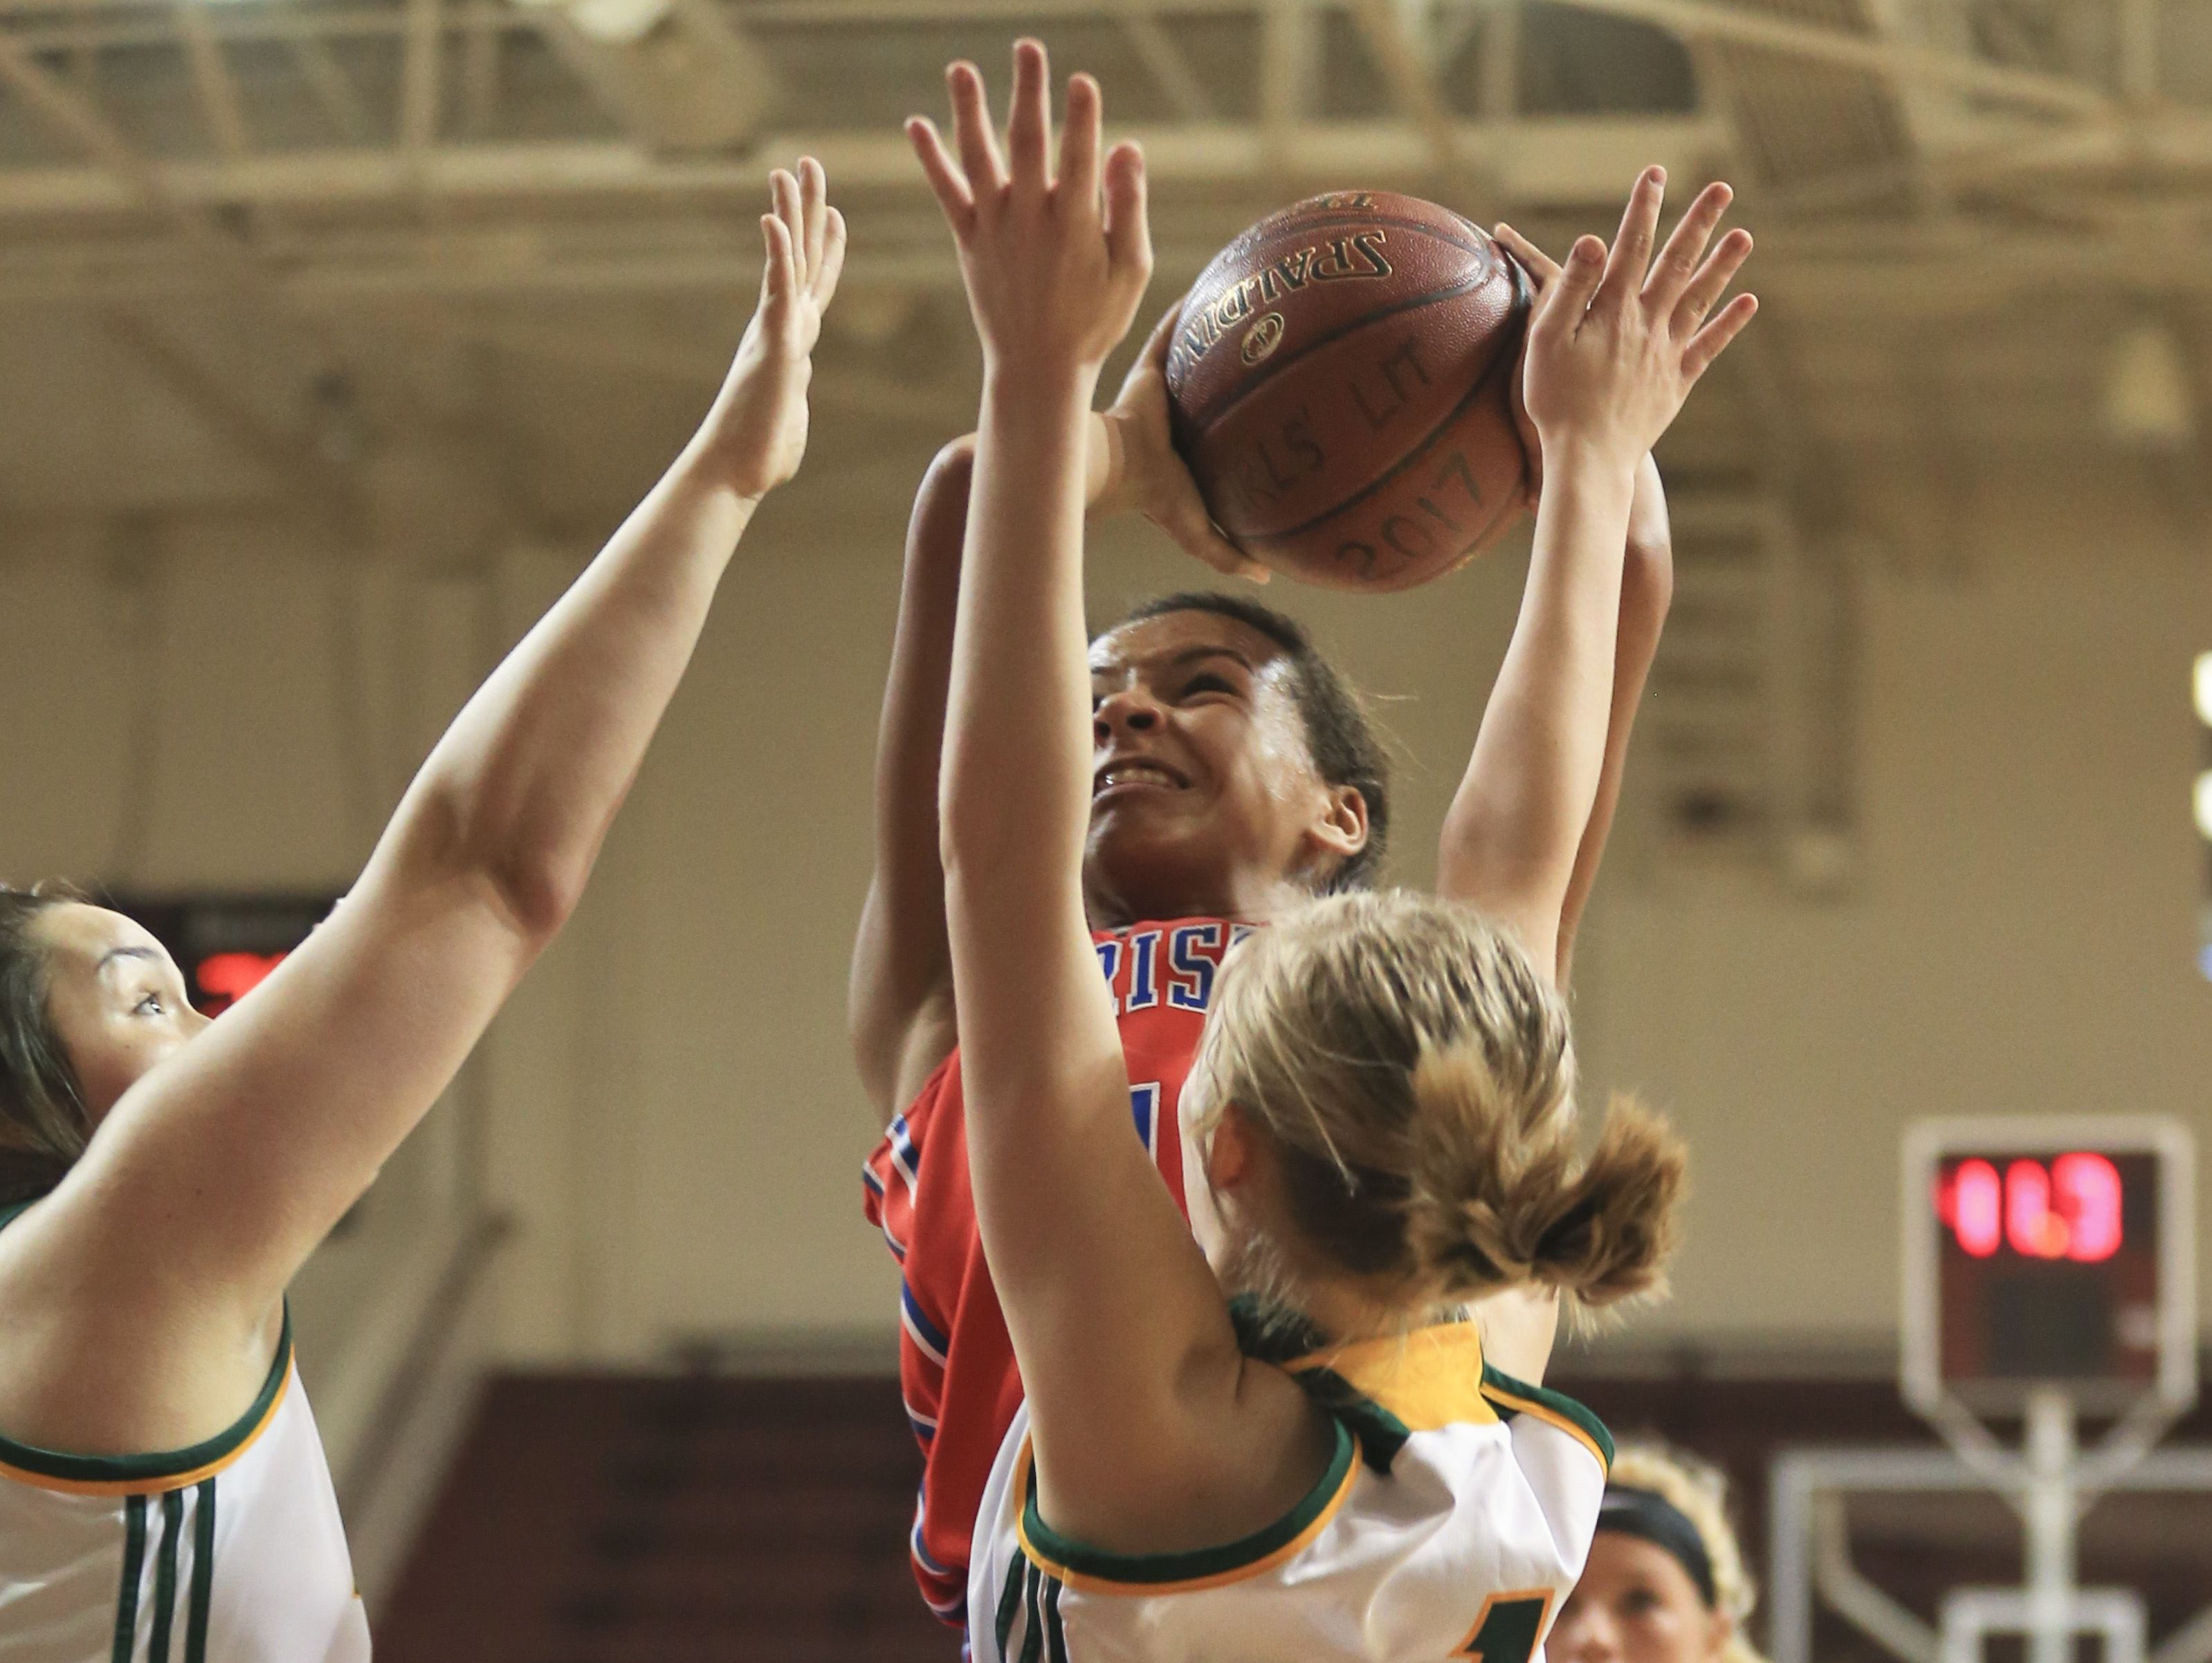 Christian Academie's Shelby Calhoun shoots over two North Bullitt defenders during the first game of the Girls' LIT at Bellarmine University Tuesday afternoon. Calhoun finished with 16 points and nine rebounds.